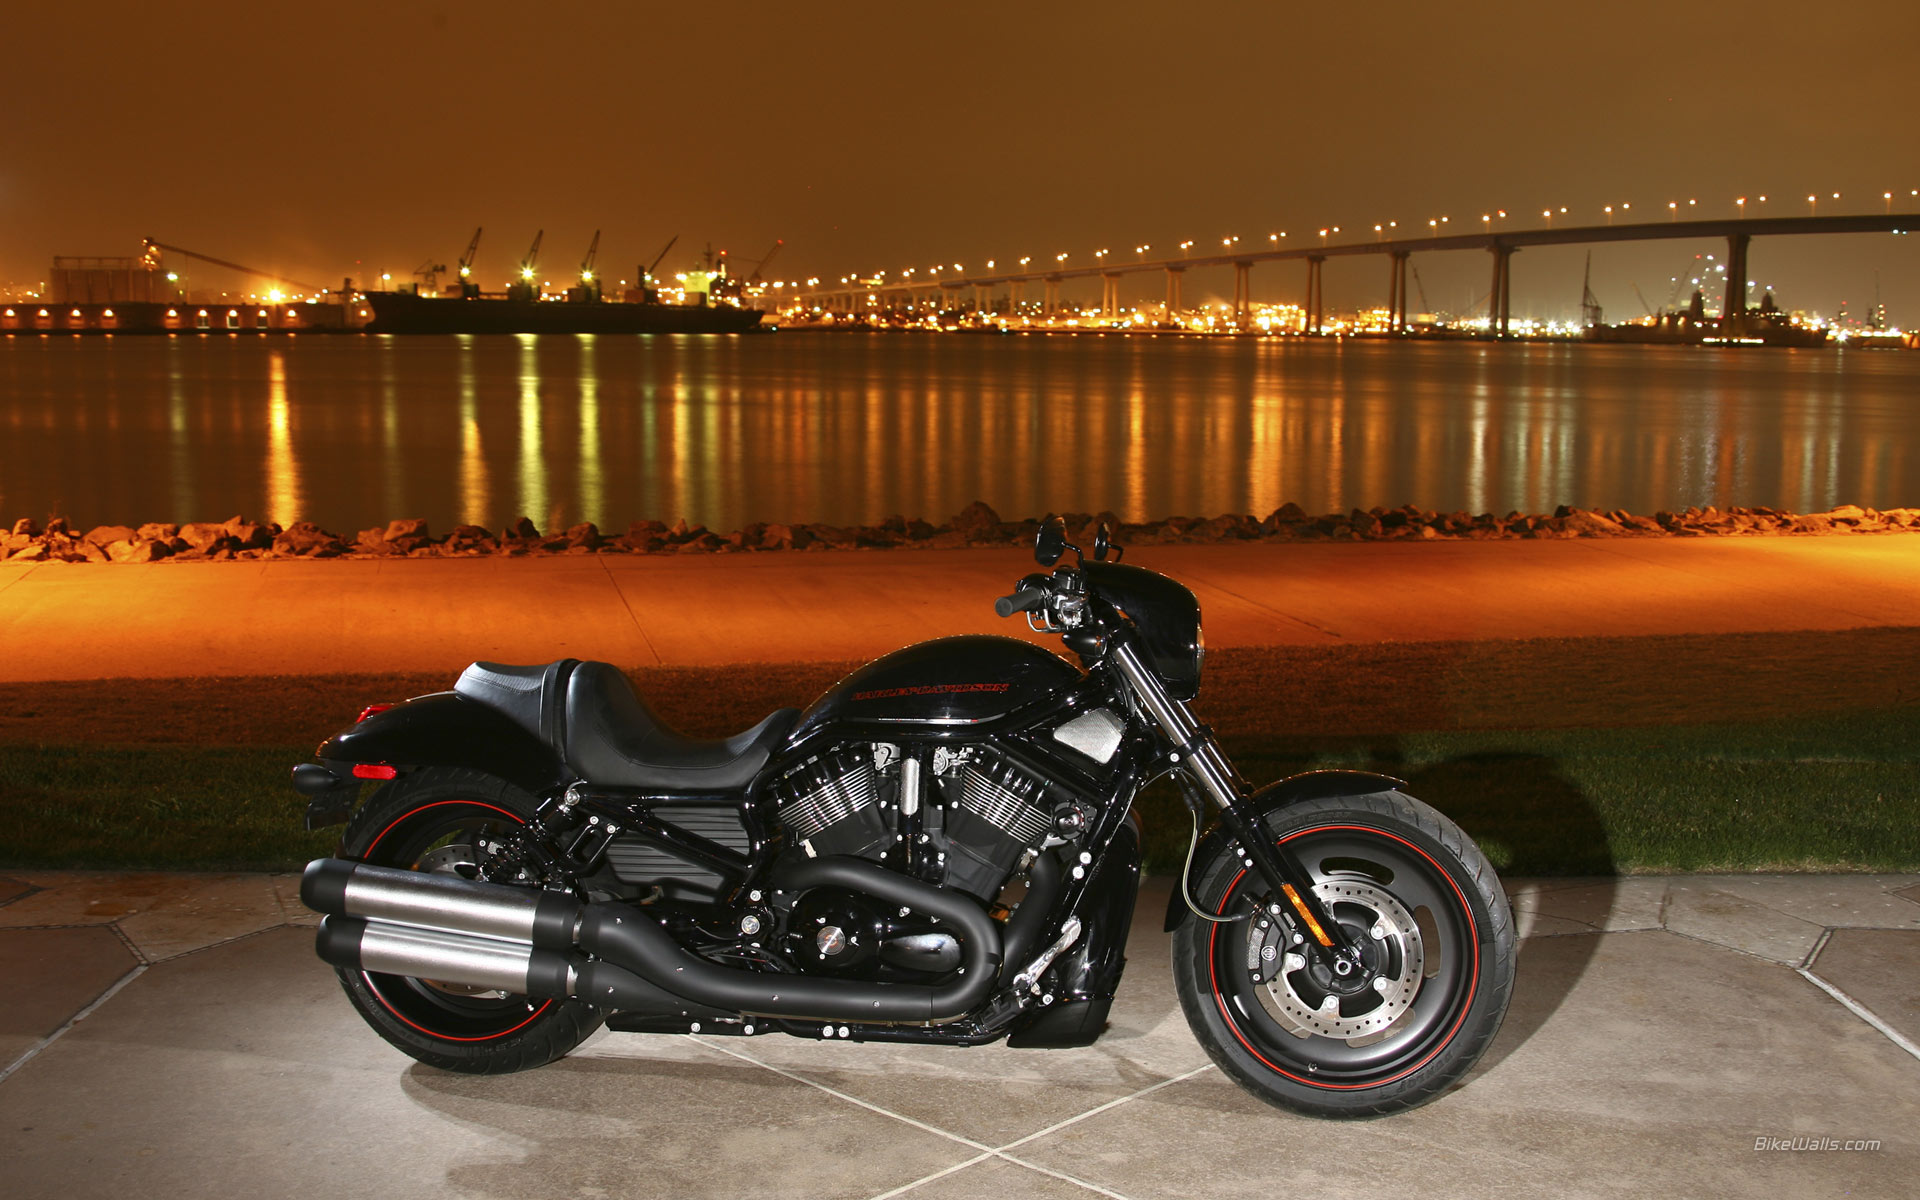 Harley Davidson Night Rod Wallpaper High Quality For Harley Davidson V Rod 1920x1200 Wallpaper Teahub Io